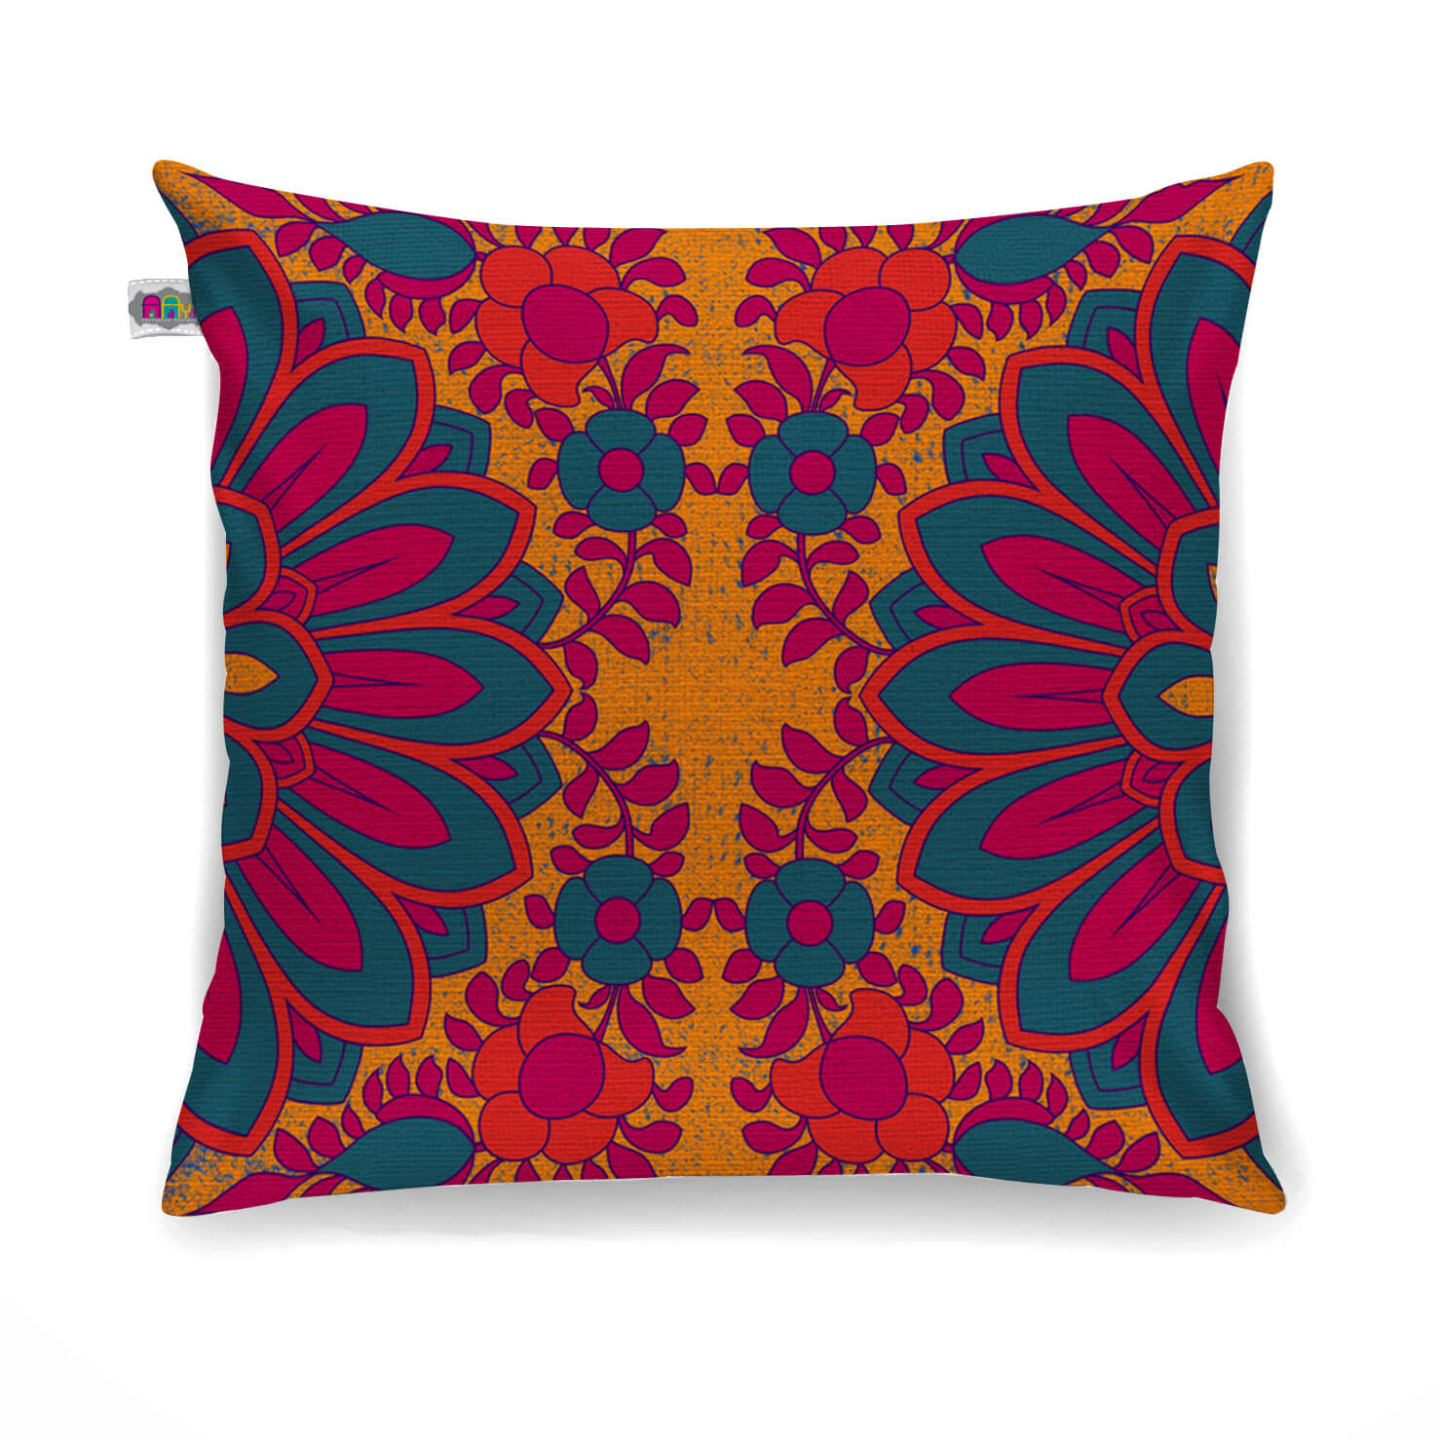 Splendid Flower Motif Cushion Cover Set of 2